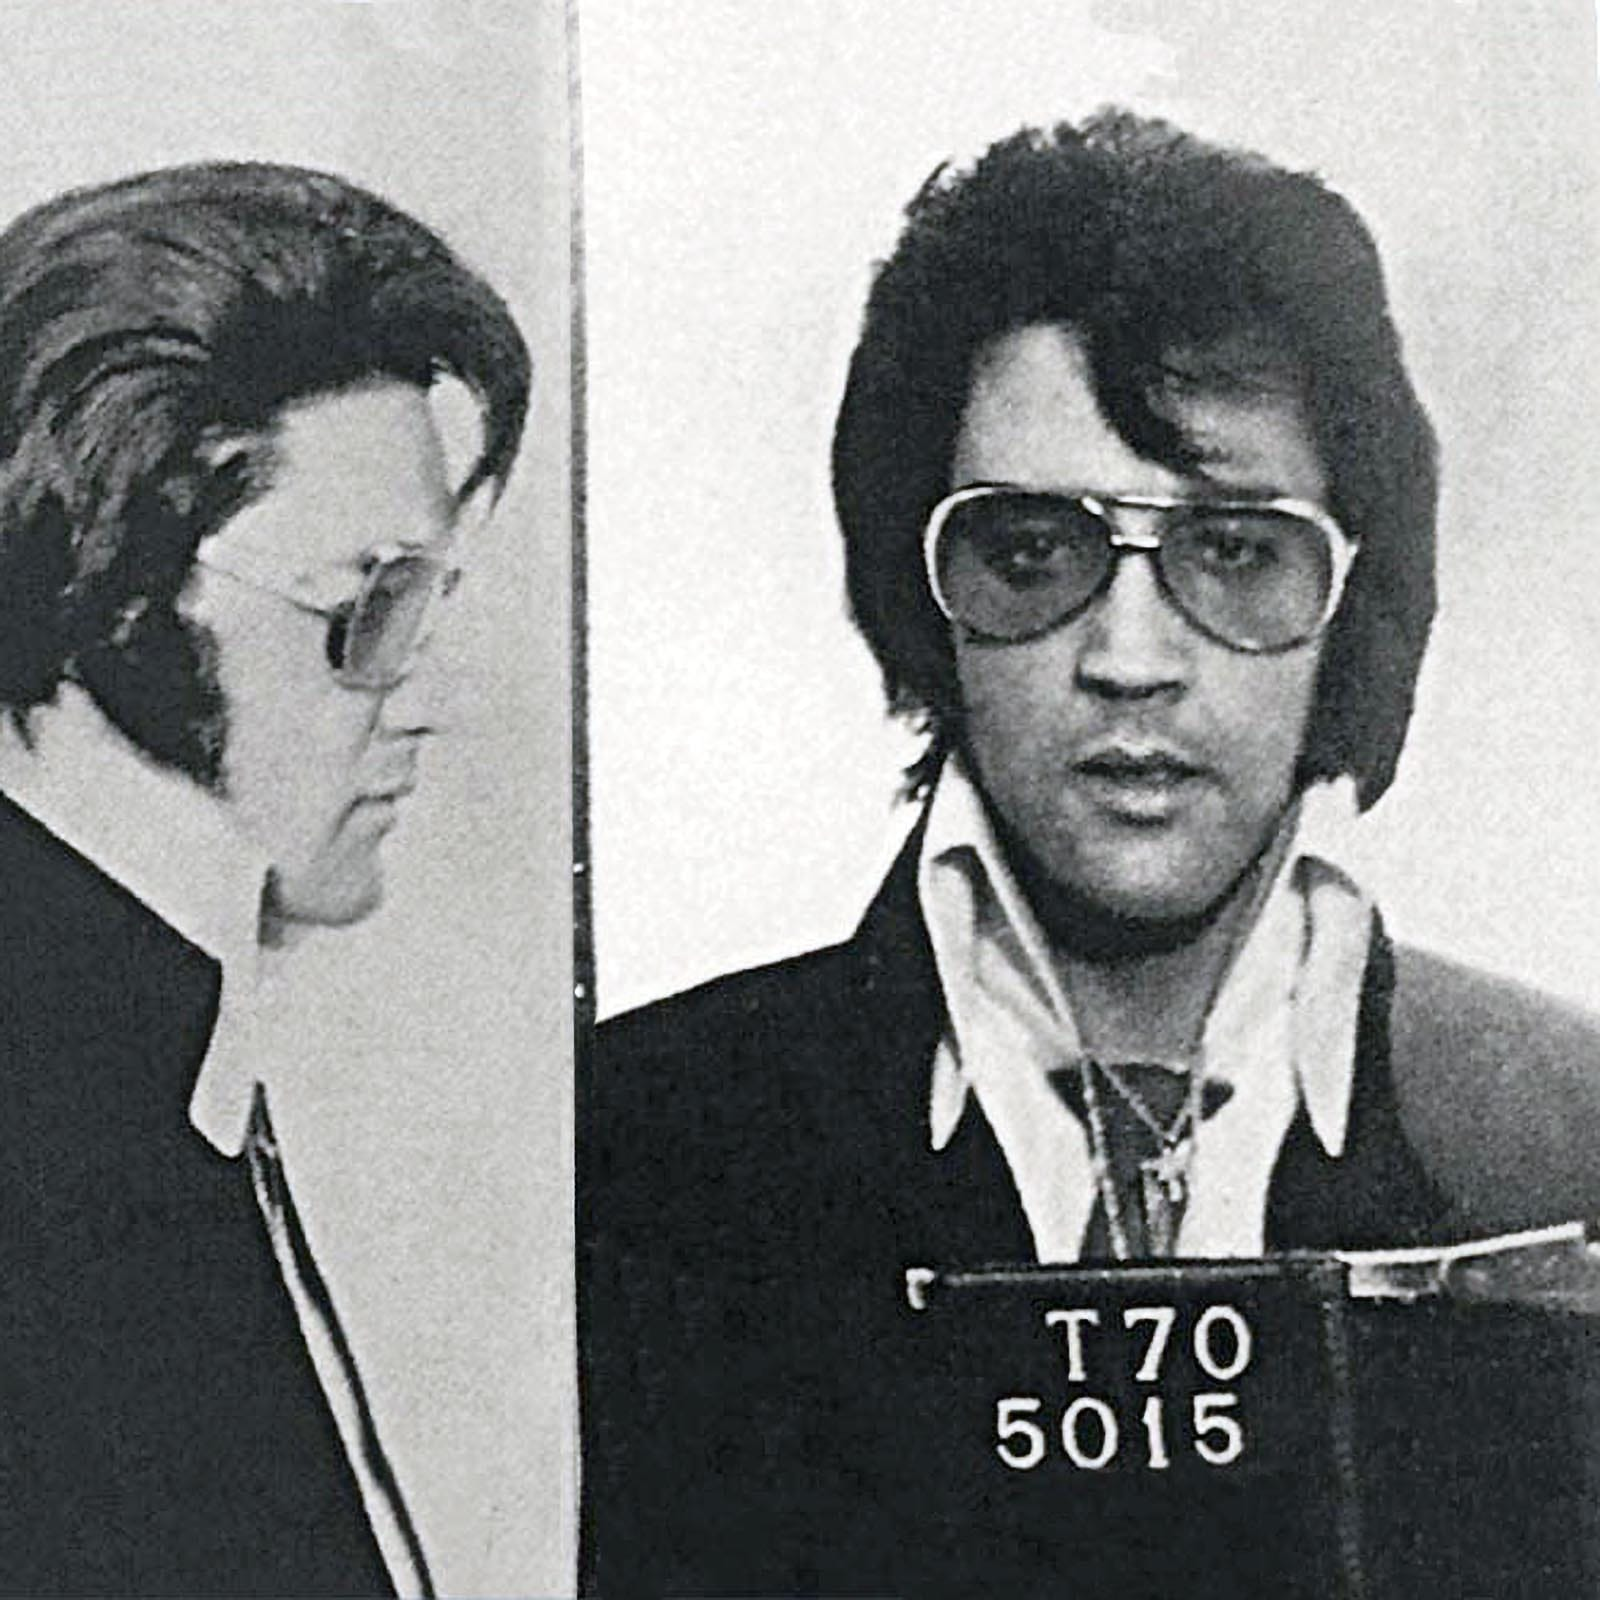 Elvis Presley, 1970   This famous  mugshot is believed  to not actually be a real mugshot. Rather it was taken November 17, 1970 by the Denver Colorado Police for Elvis's honorary Police badge. Elvis was being honored for donating to the construction of a local gym.